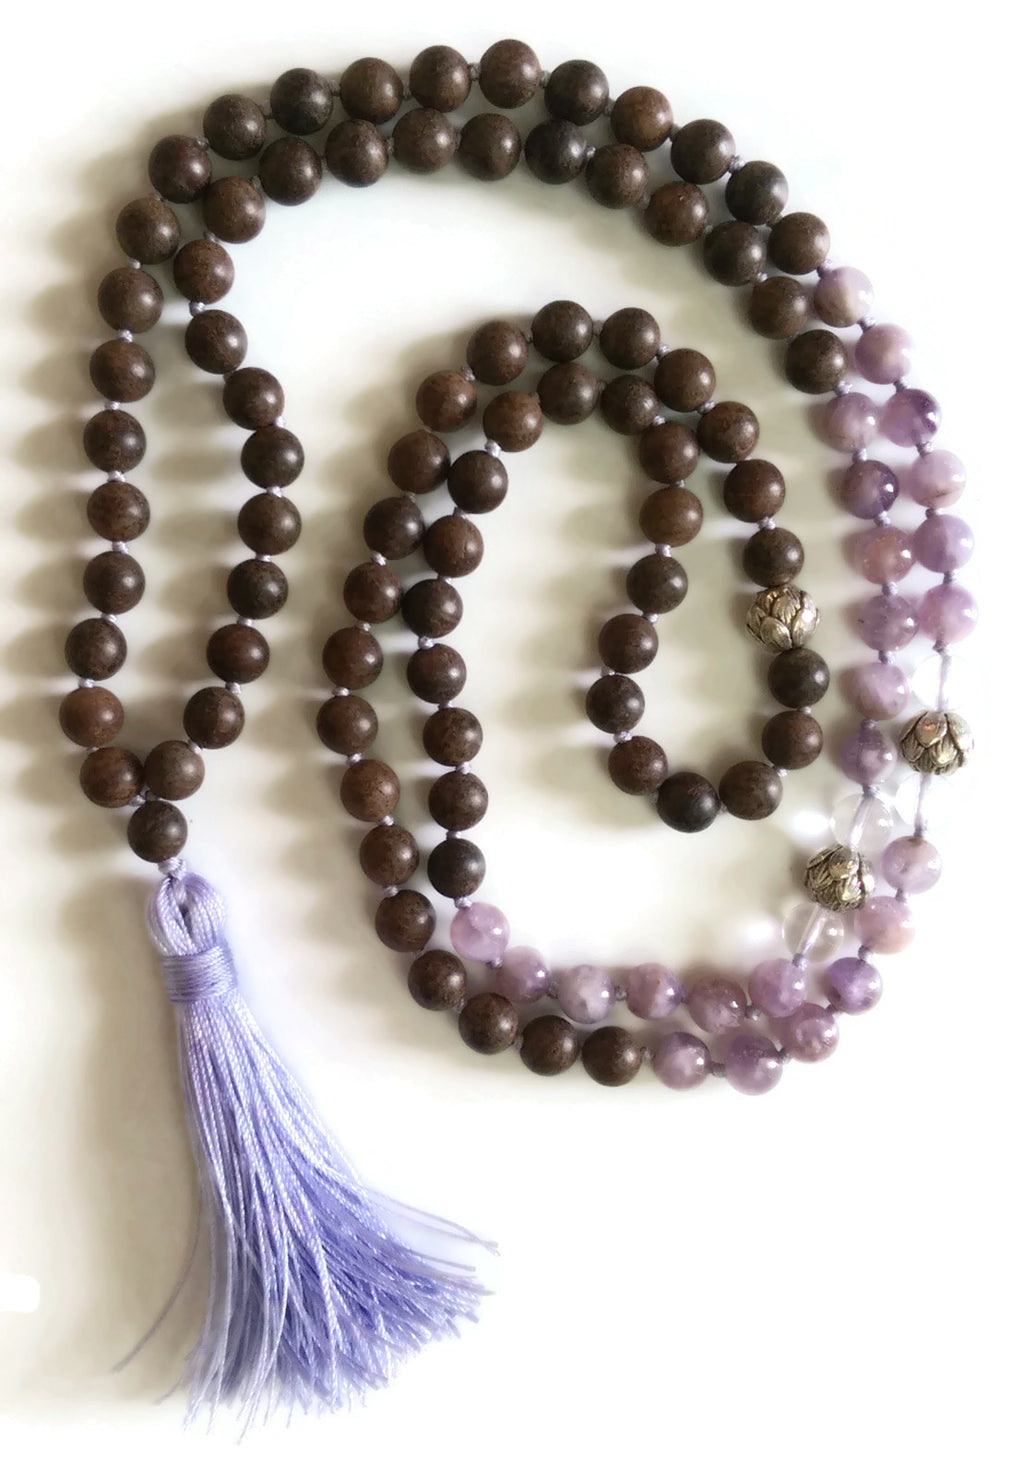 Fresh Start Chakra Collection 8mm Amethyst Crystal Brown Agarwood Traditional Knotted 108 Meditation Mala Necklace Crown Chakra Yoga Mauve